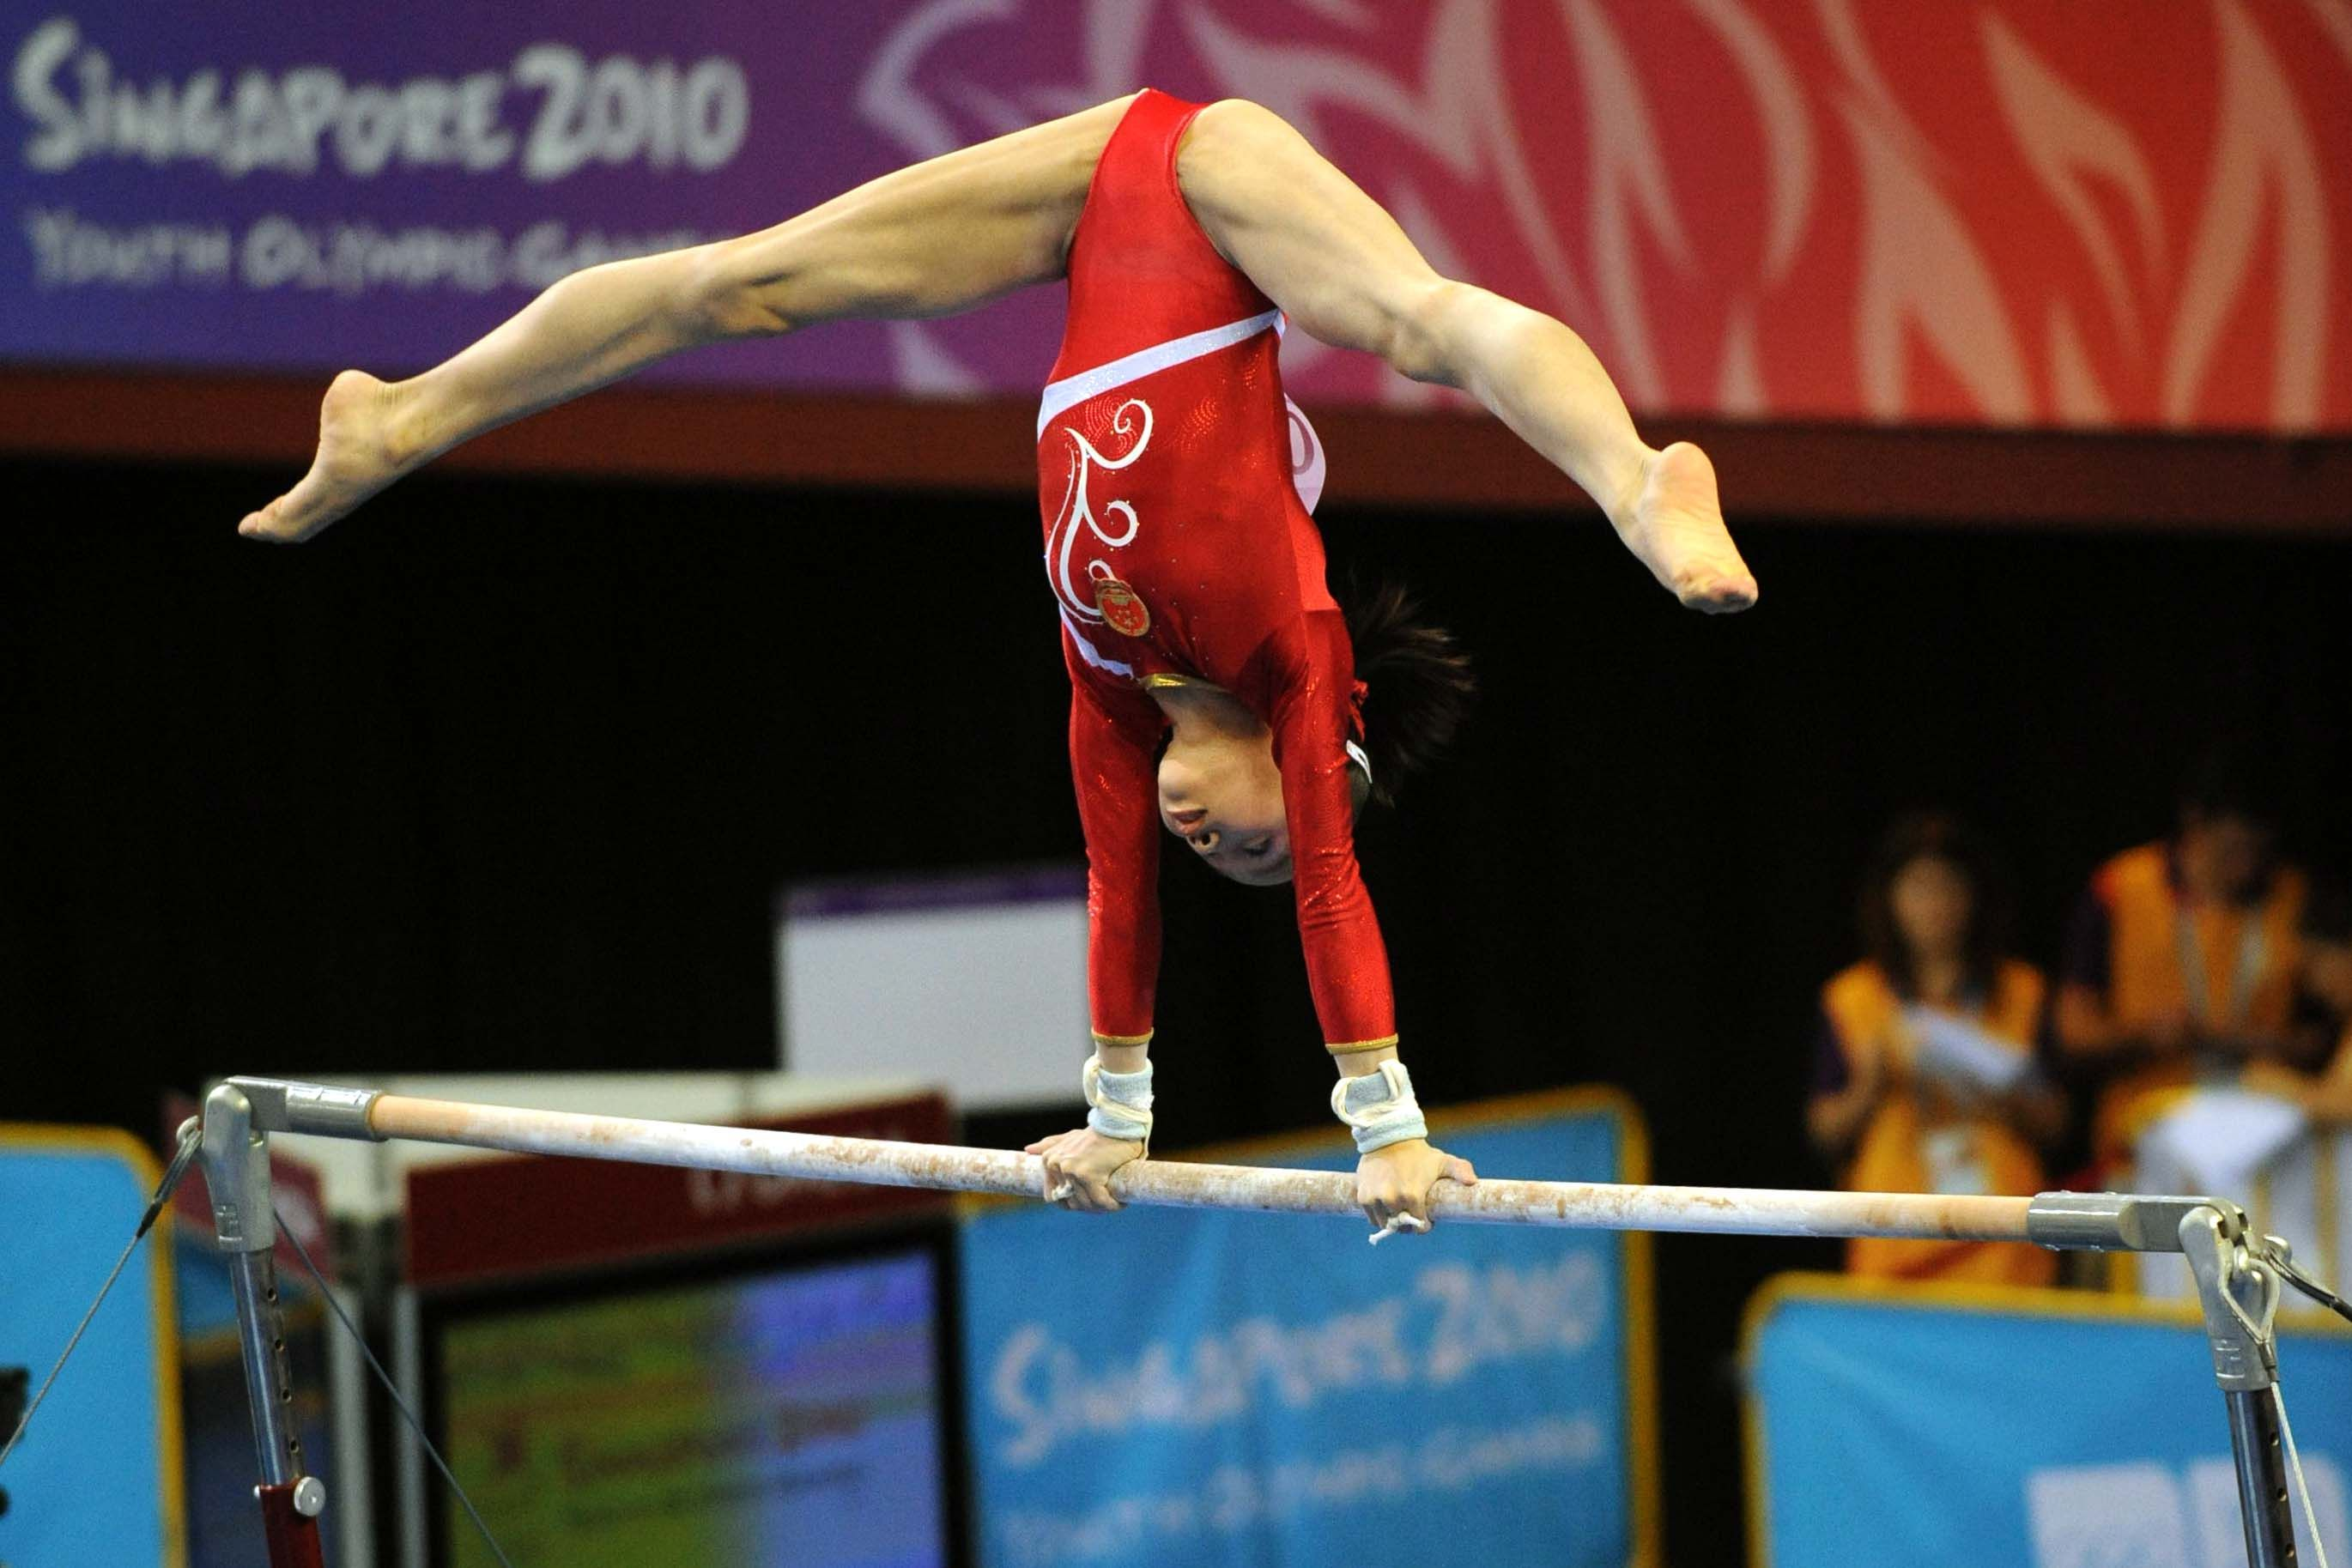 Tan Sixin on uneven bars at the 2010 Youth Olympic Games